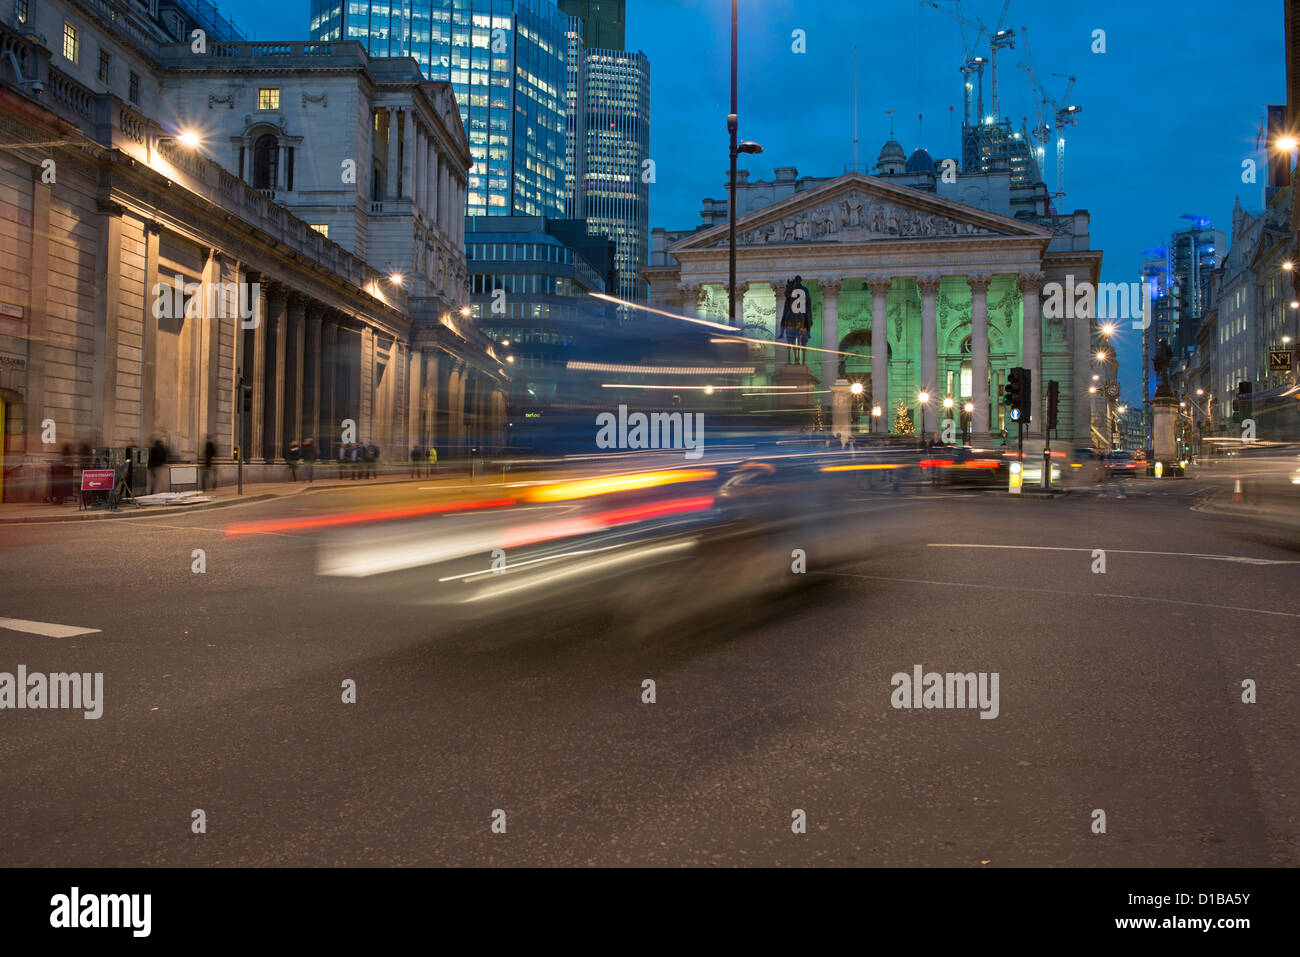 Bank Junction at night with the Royal Exchange ,City of London,England - Stock Image